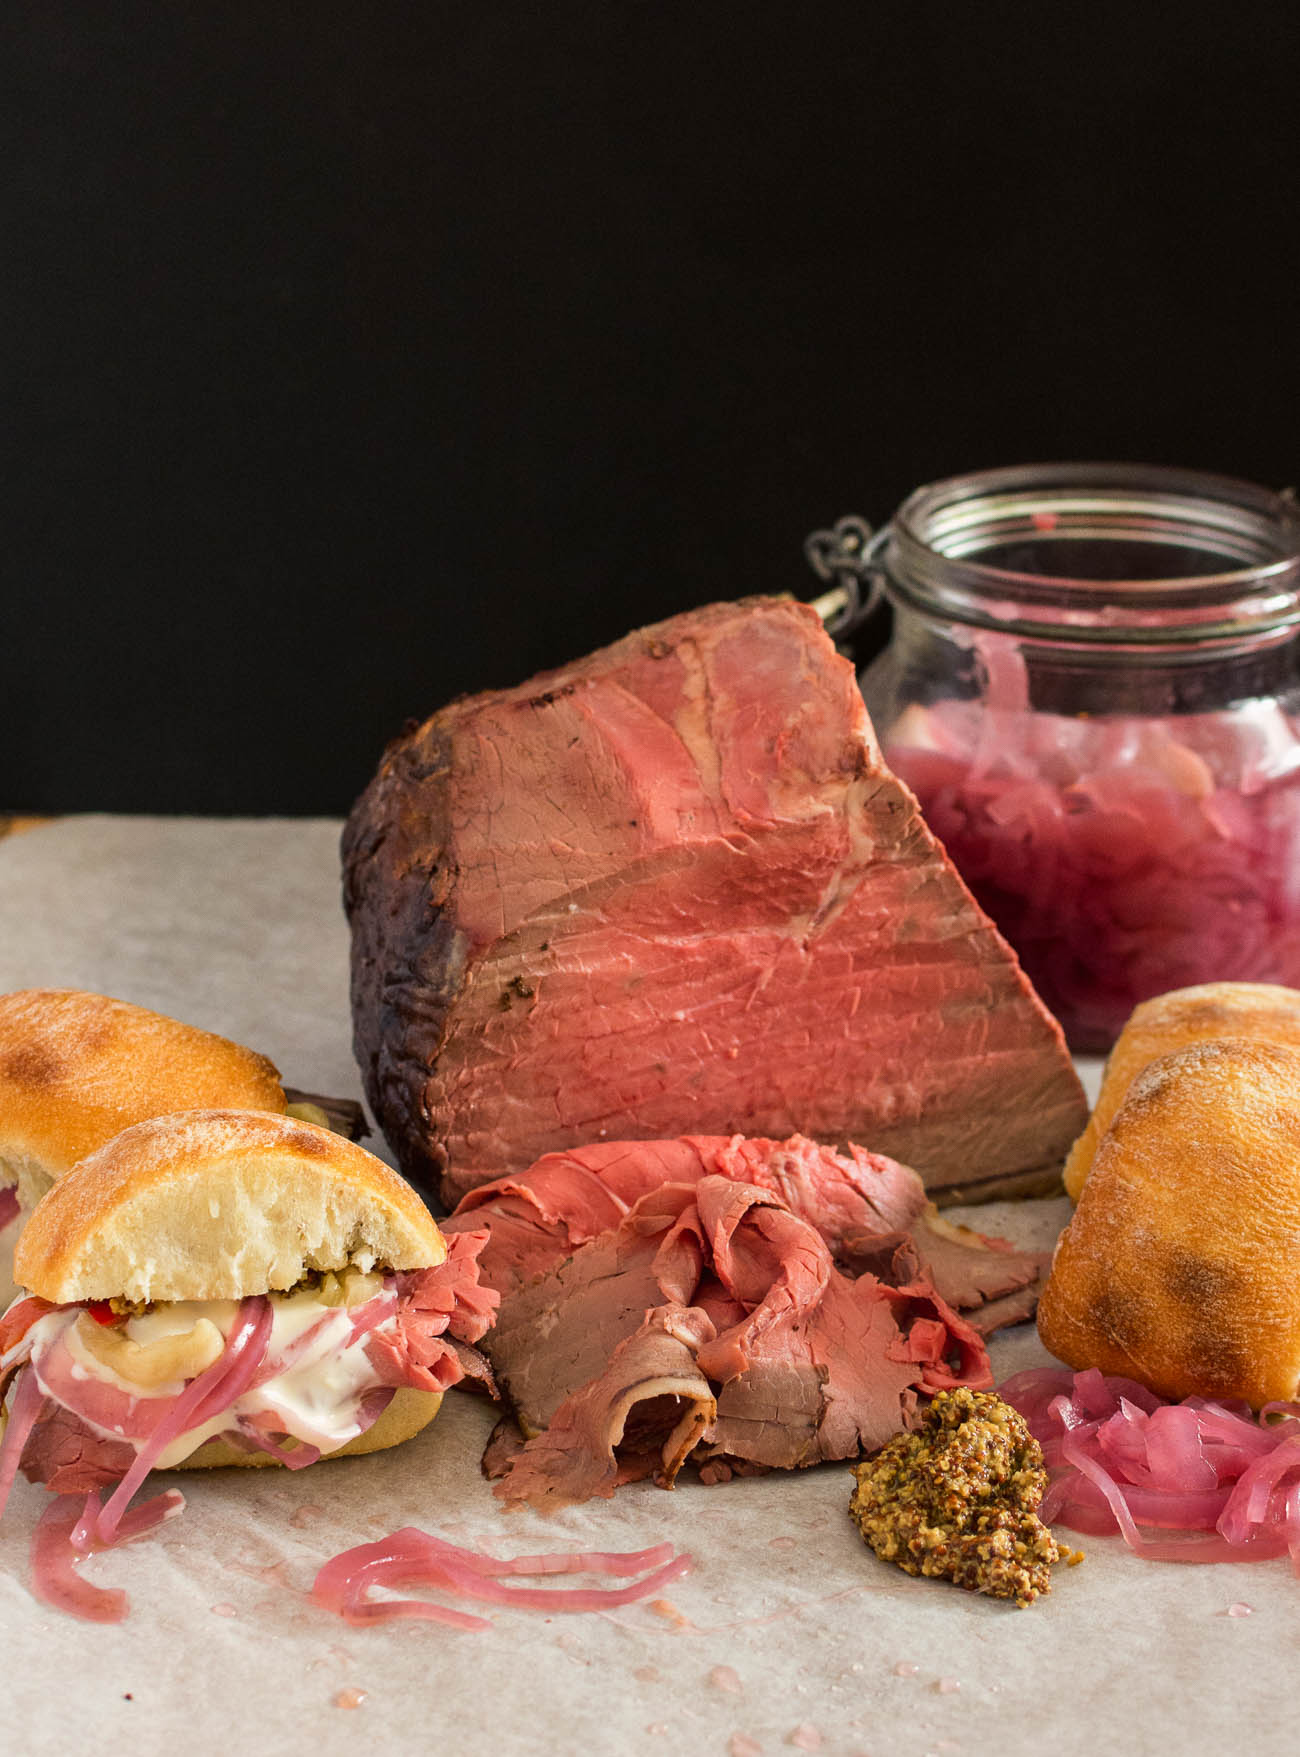 Make your roast beef sandwich beef from scratch. Cheaper, tastier and dead easy.